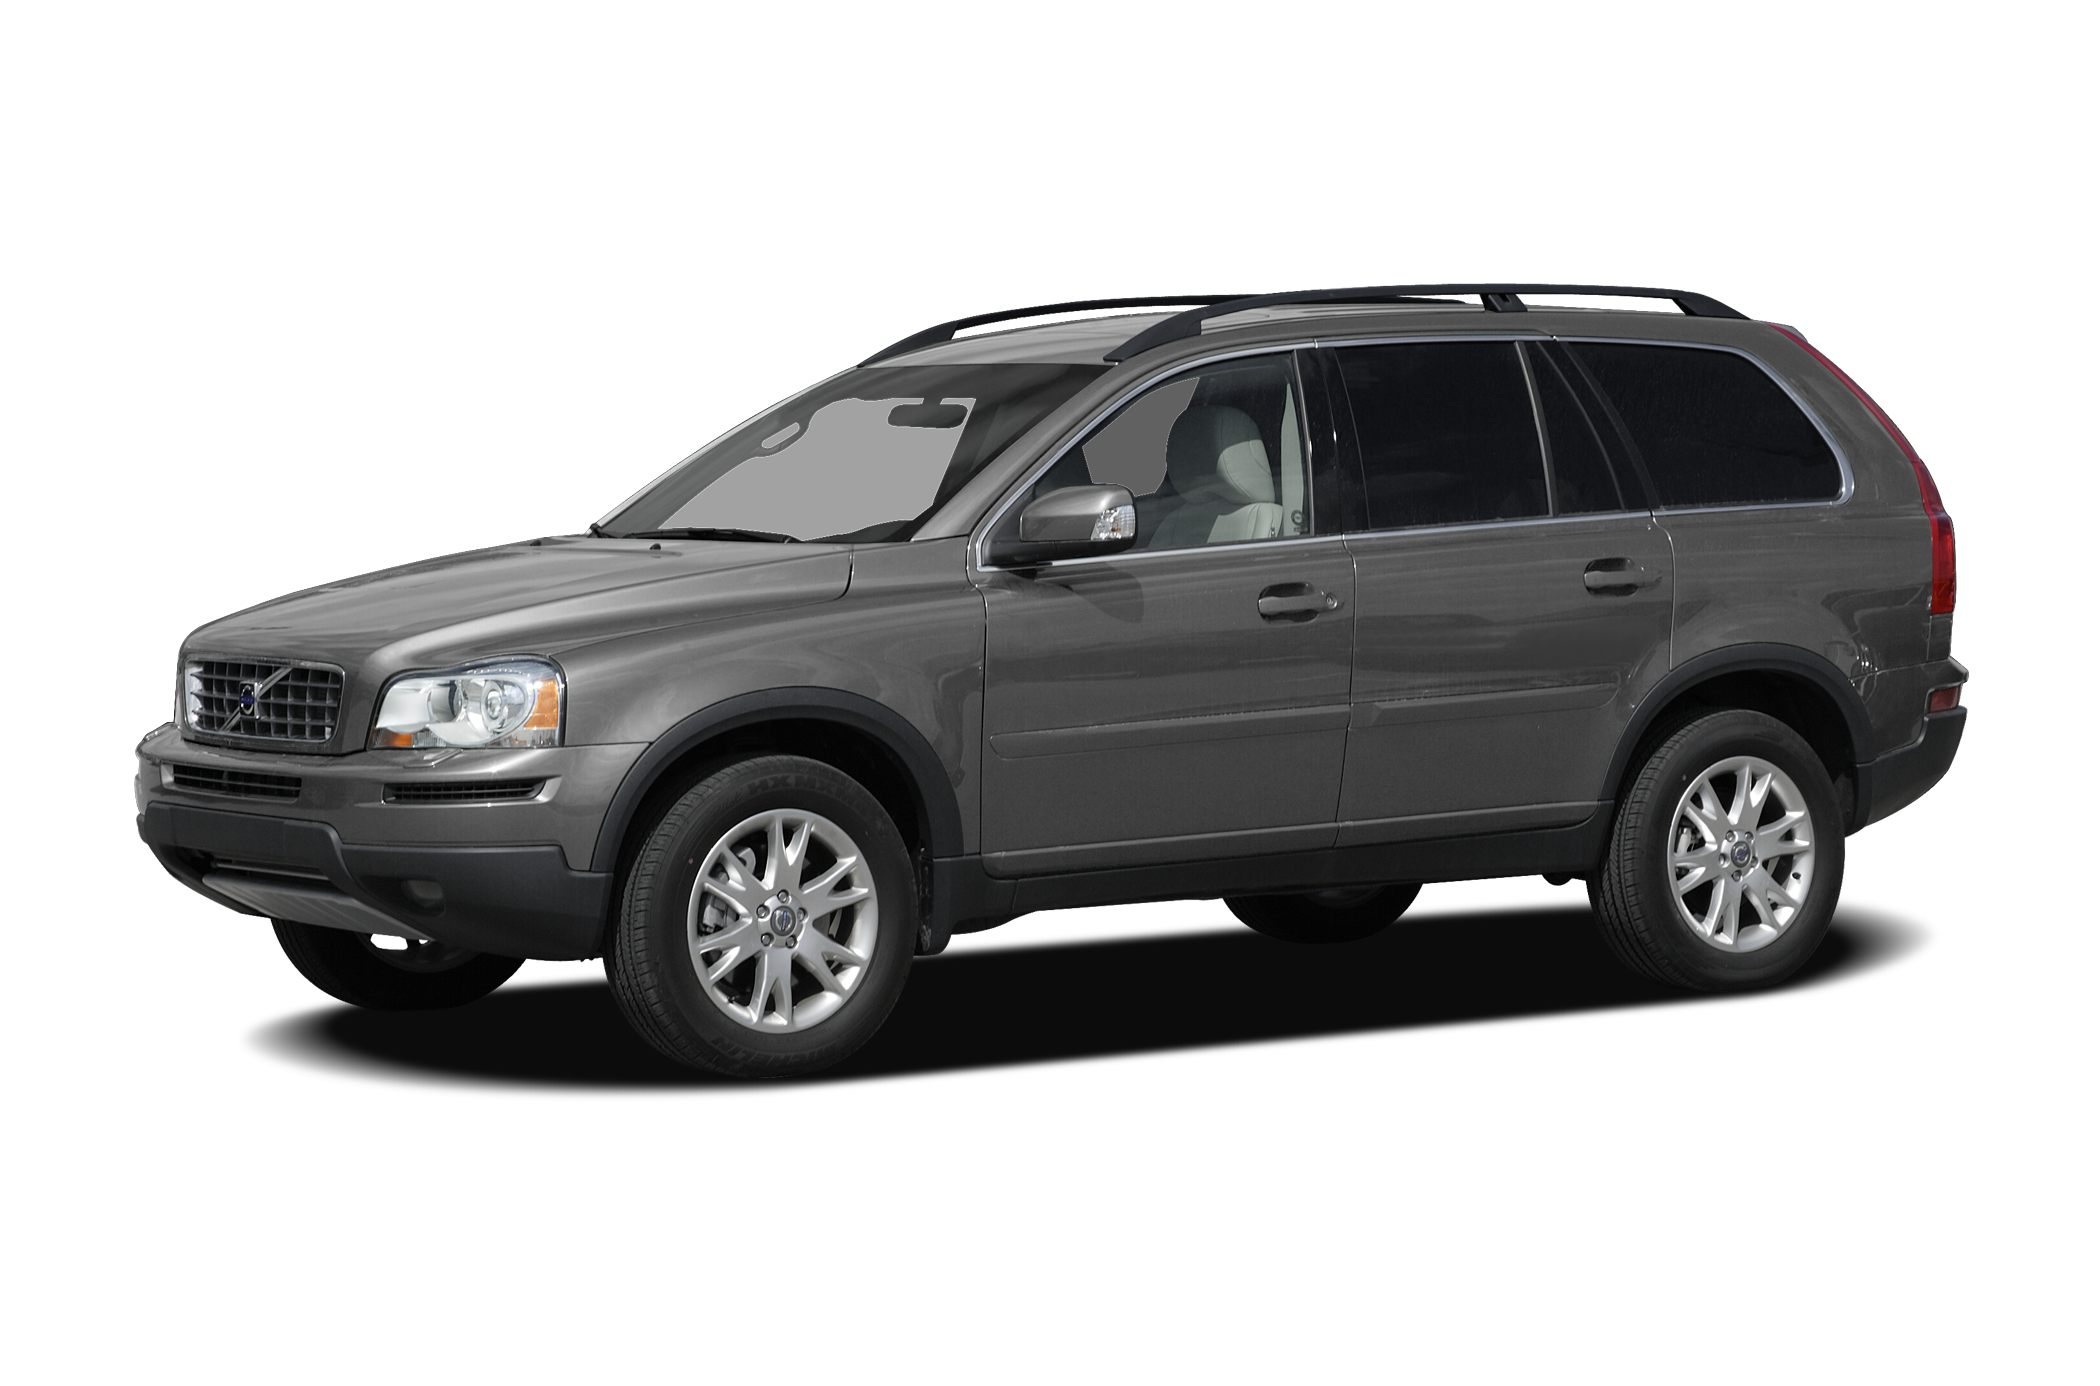 2007 Volvo XC90 3.2 SUV for sale in Greensboro for $9,991 with 126,996 miles.